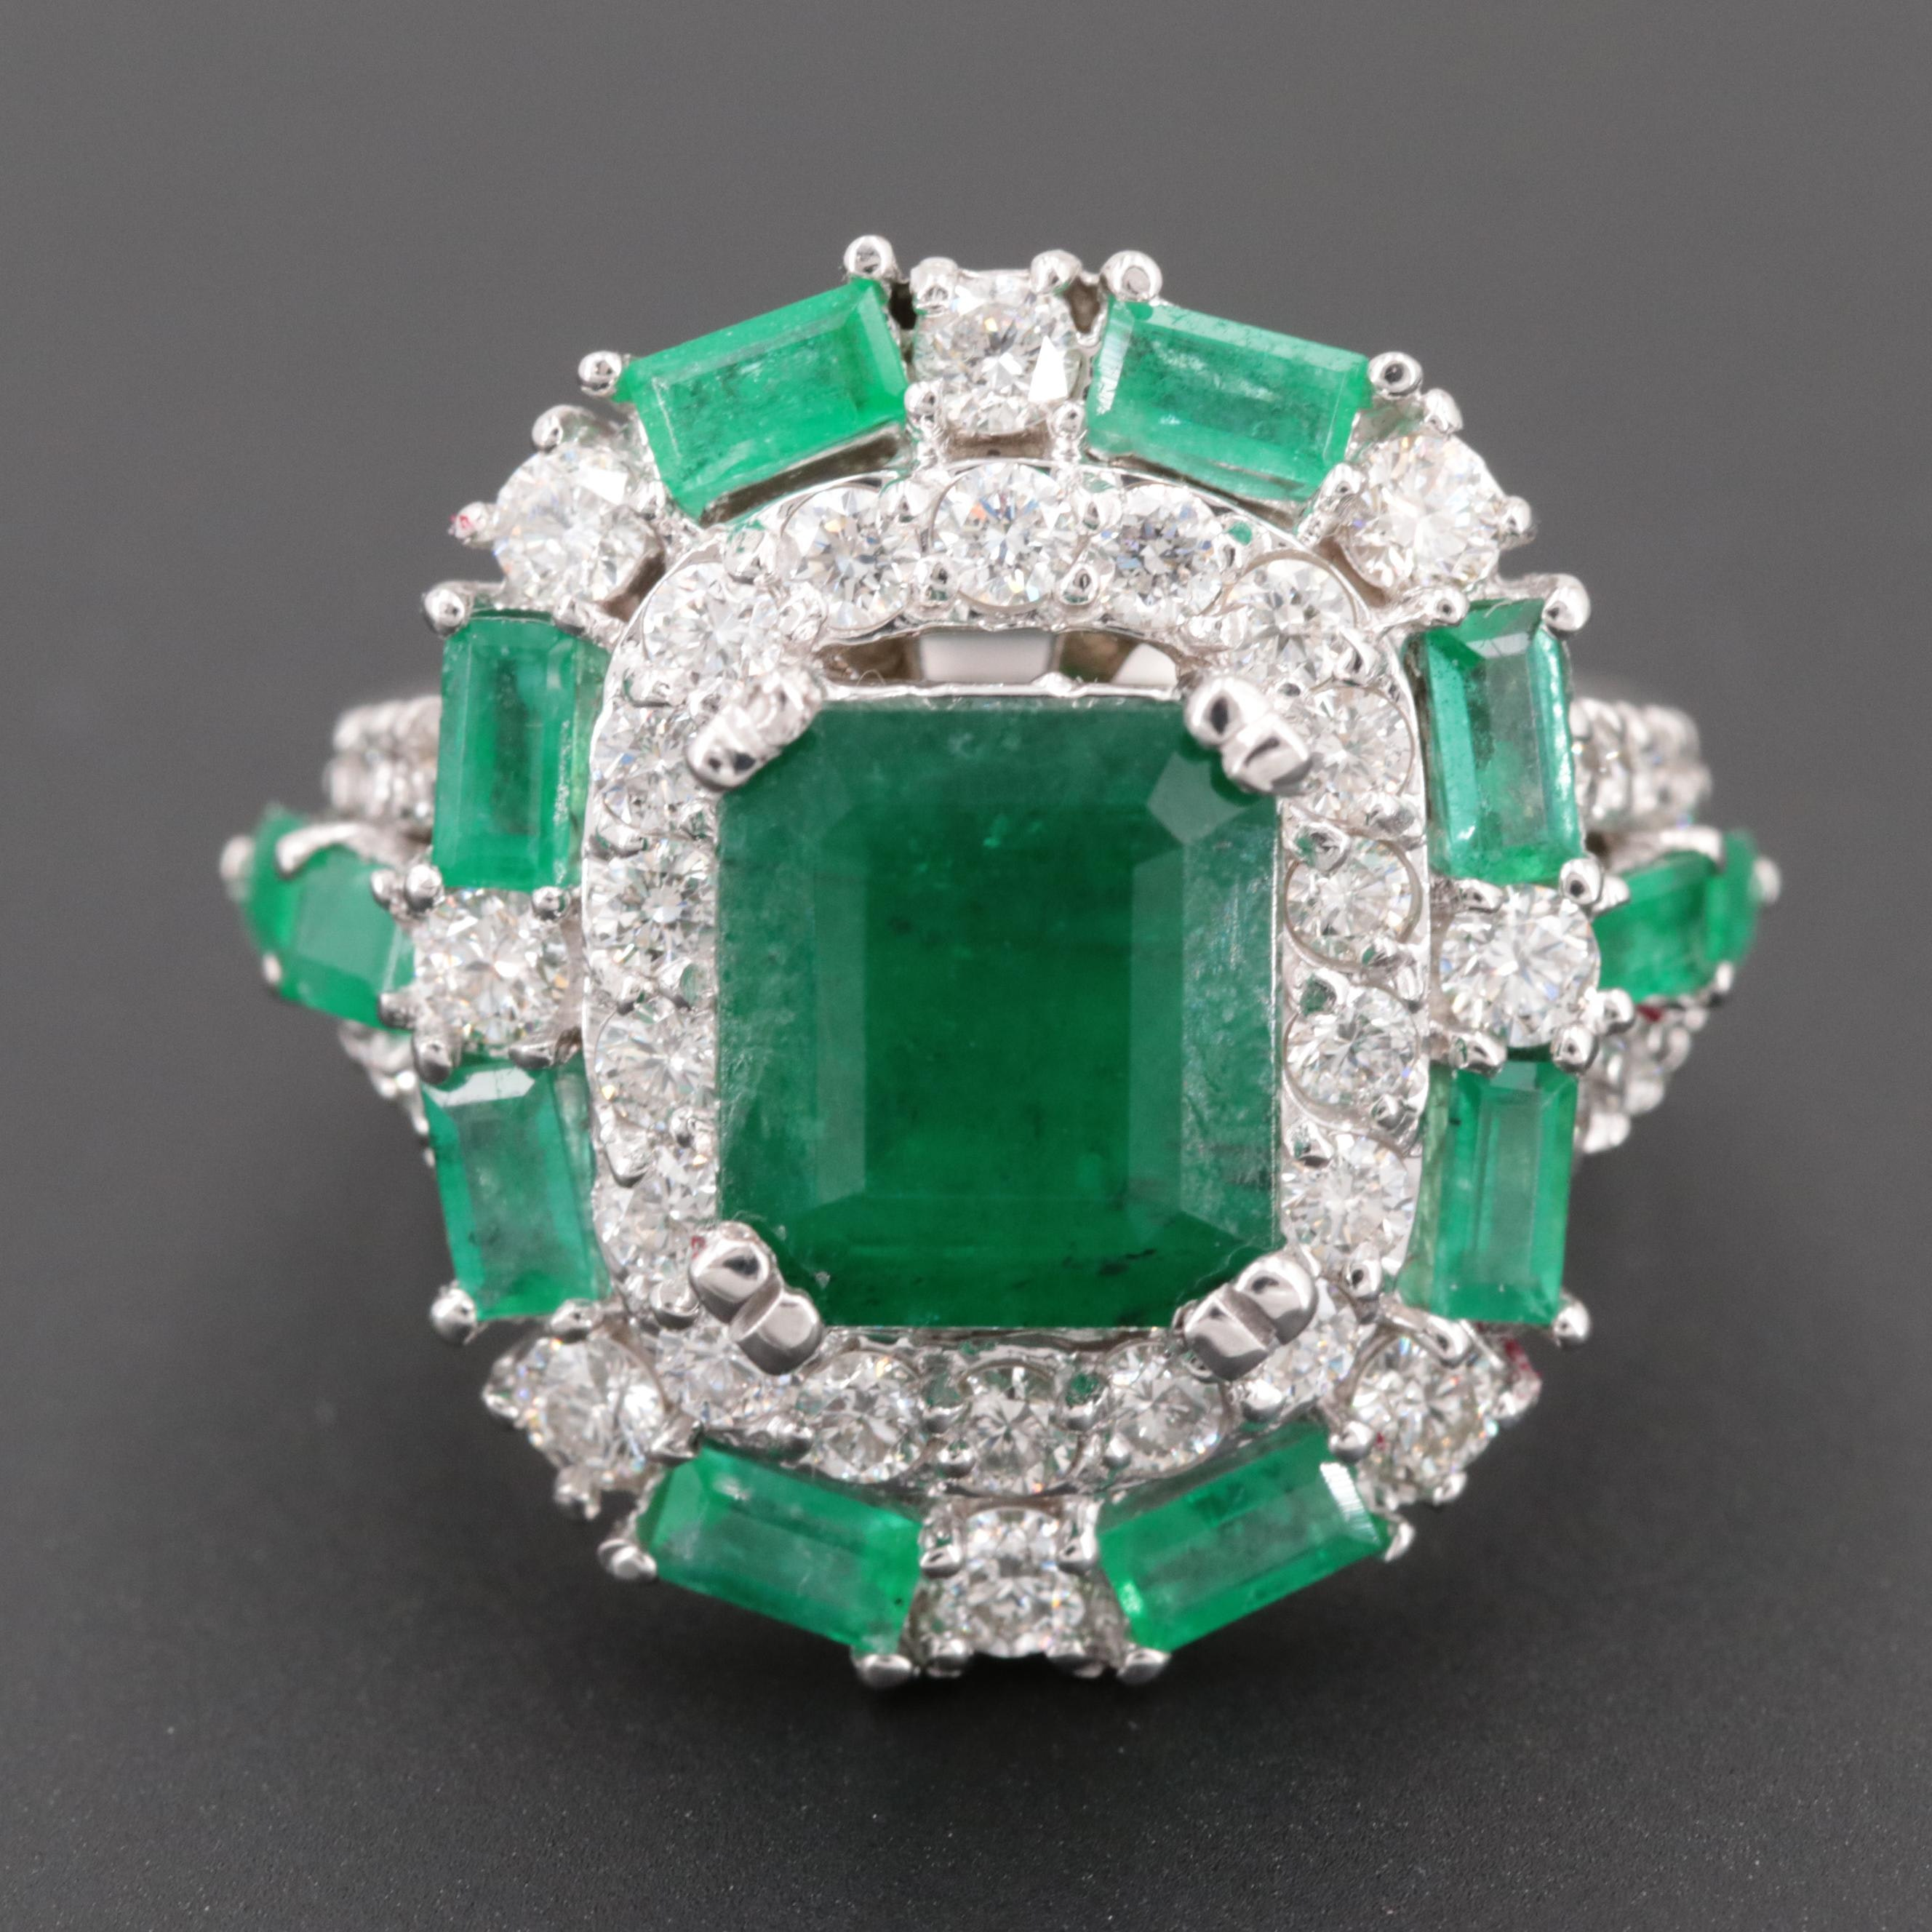 18K White Gold 1.41 CTW Diamond and Emerald Ring with 2.64 CT Center Stone